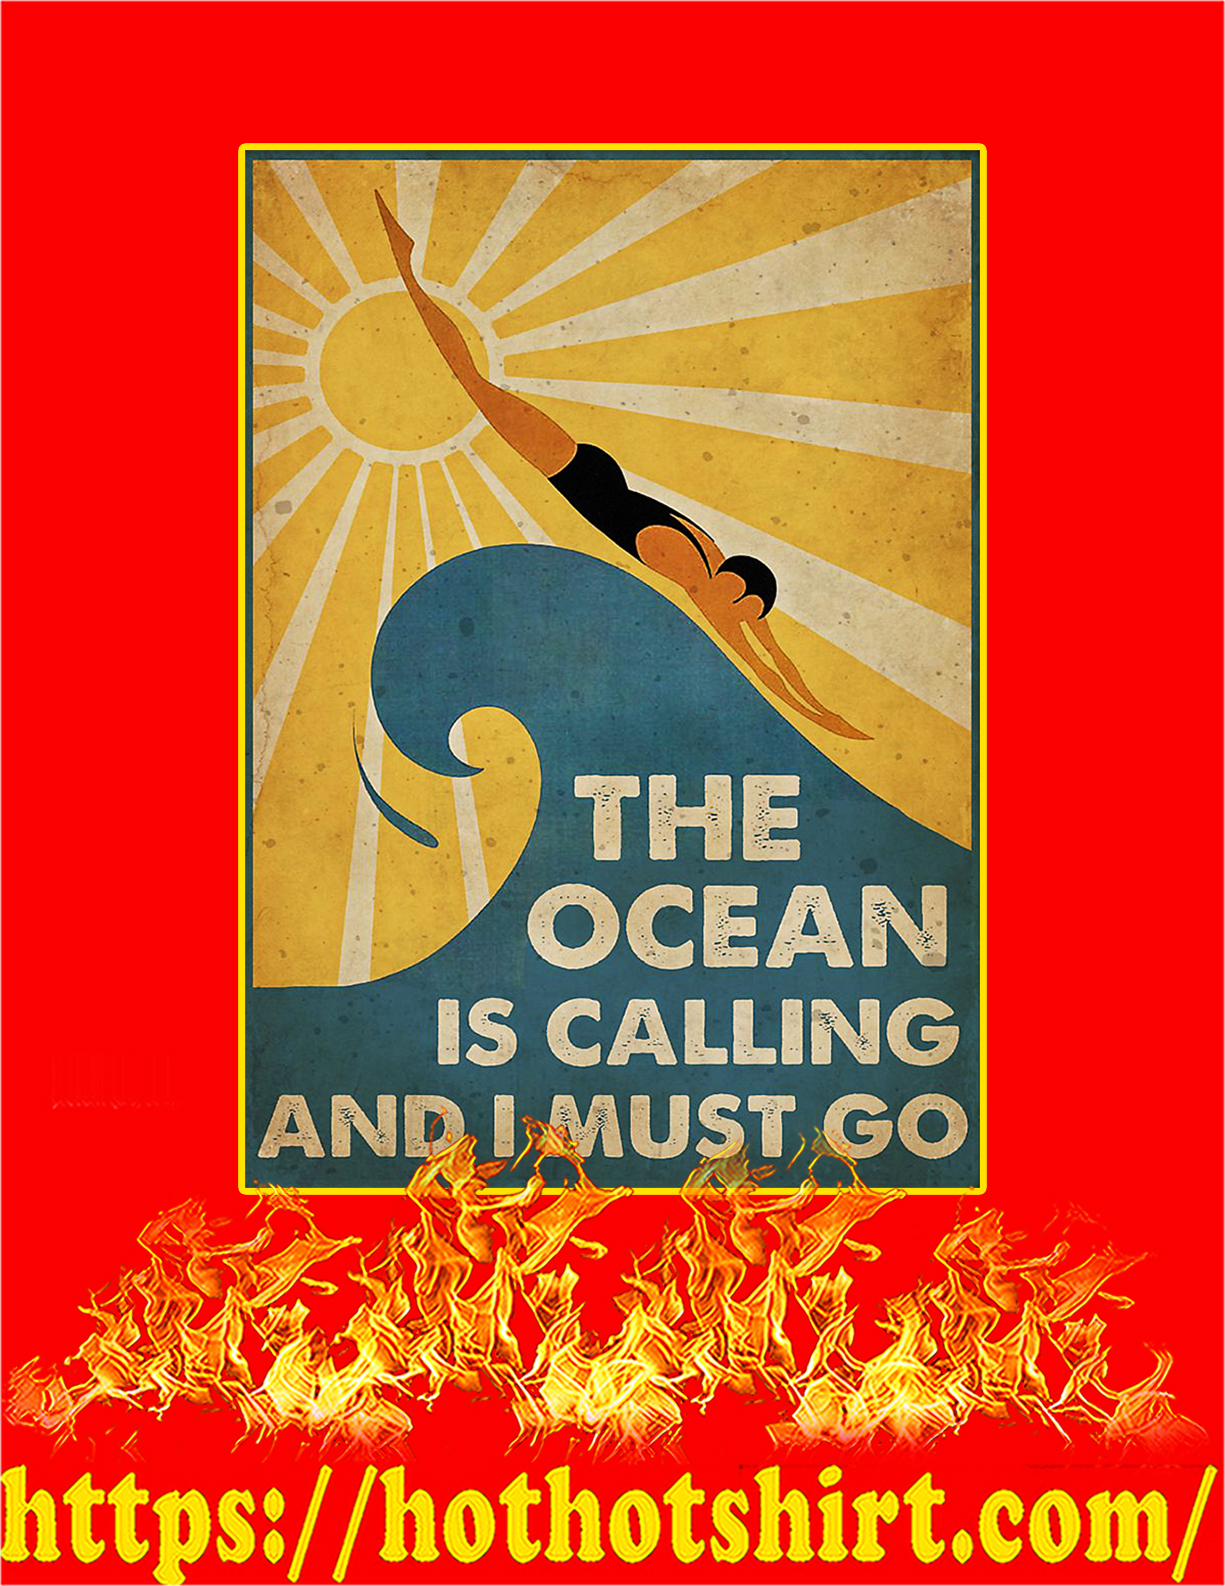 Swimming The ocean is calling and I must go poster - A4